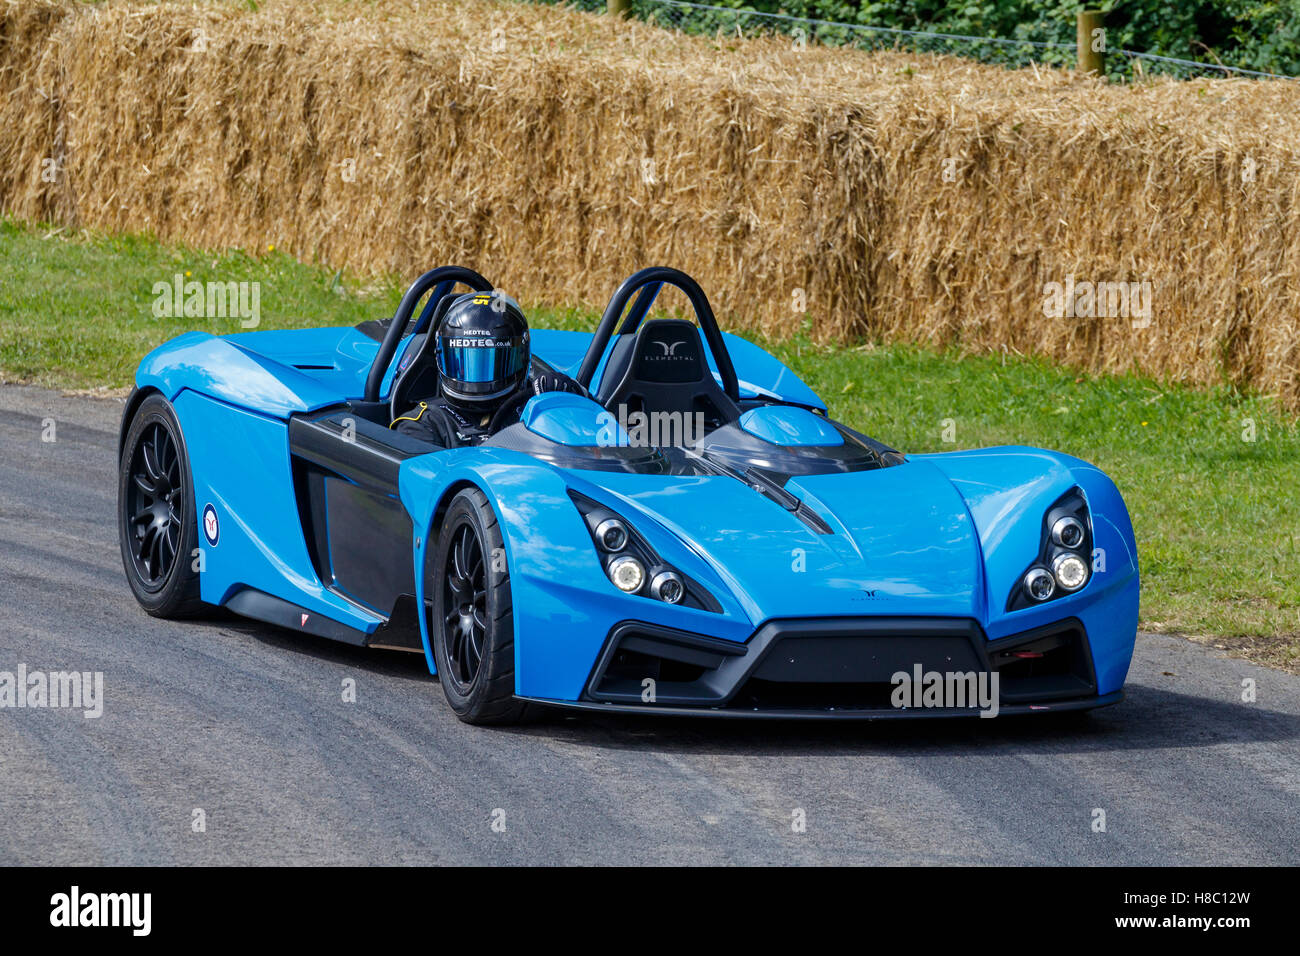 2016 Elemental RP1 sports car at the 2016 Goodwood Festival of Speed, Sussex, UK. - Stock Image